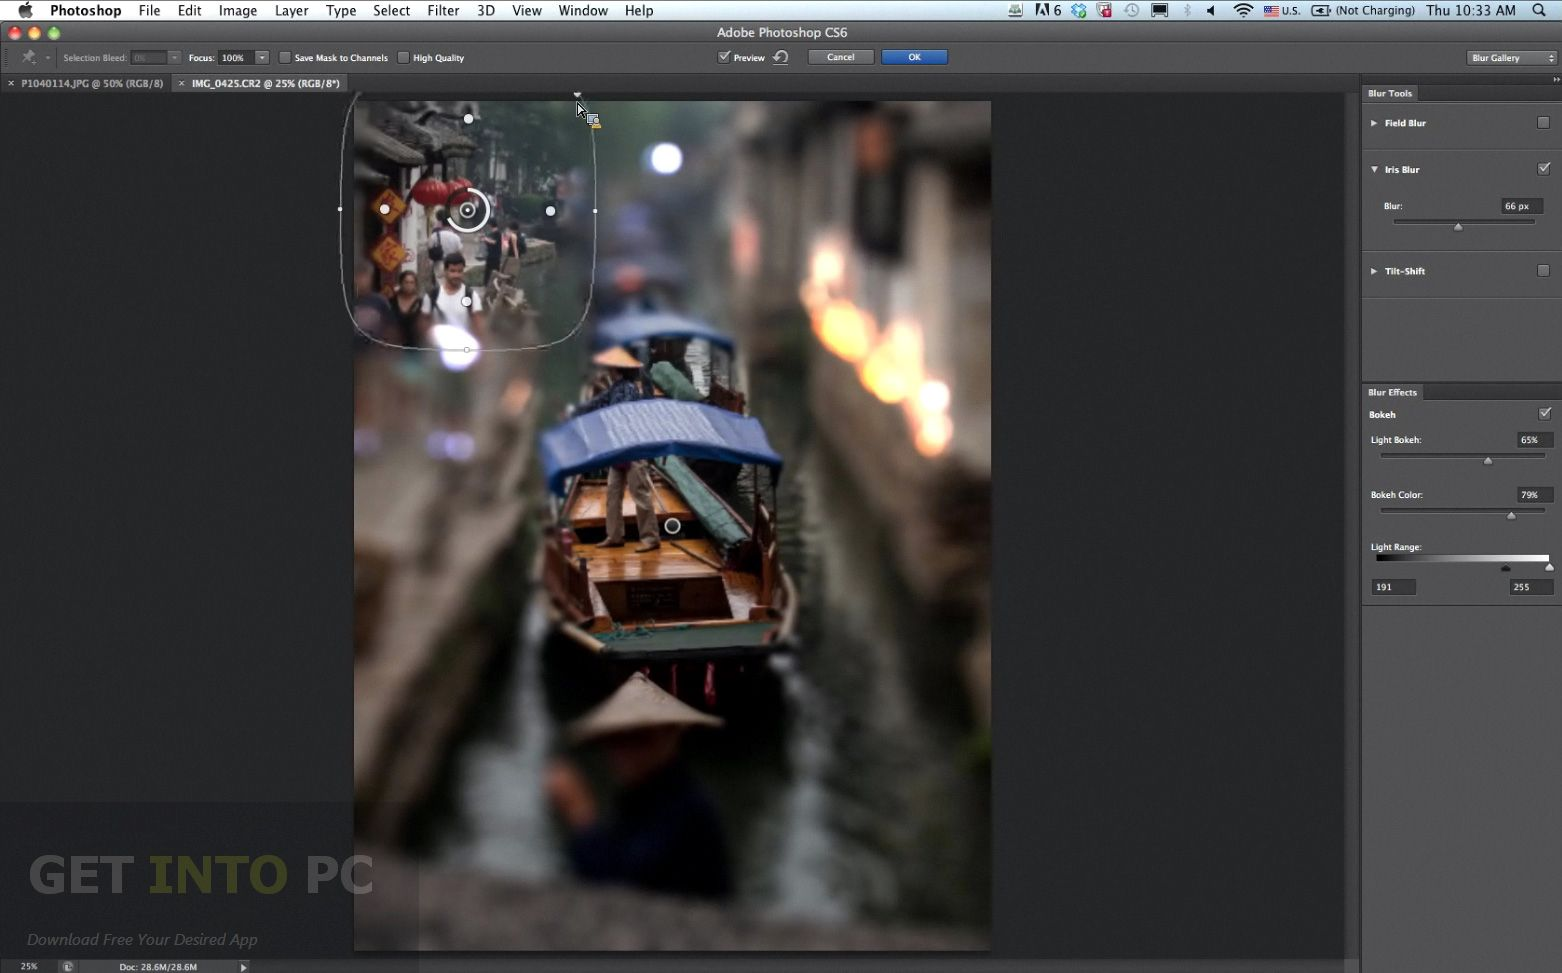 Adobe photoshop cs6 portable rus скачать